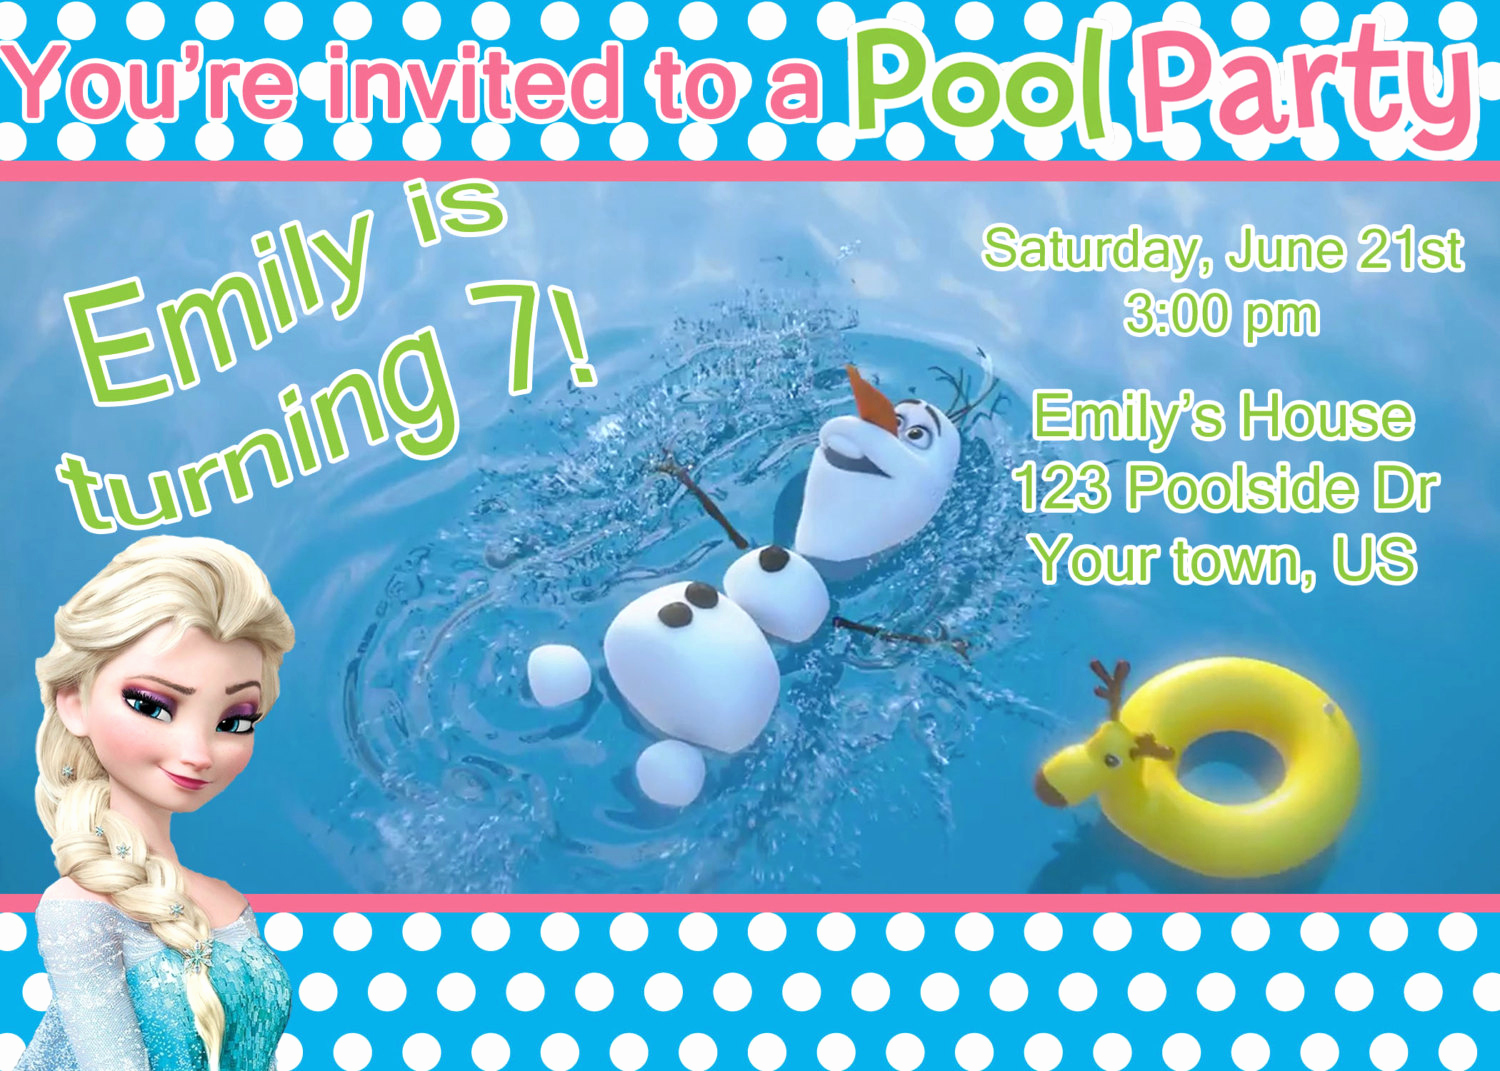 Frozen Party Invitation Templates Elegant Frozen Pool Party Invitation Elsa by Designsbycarrielee On